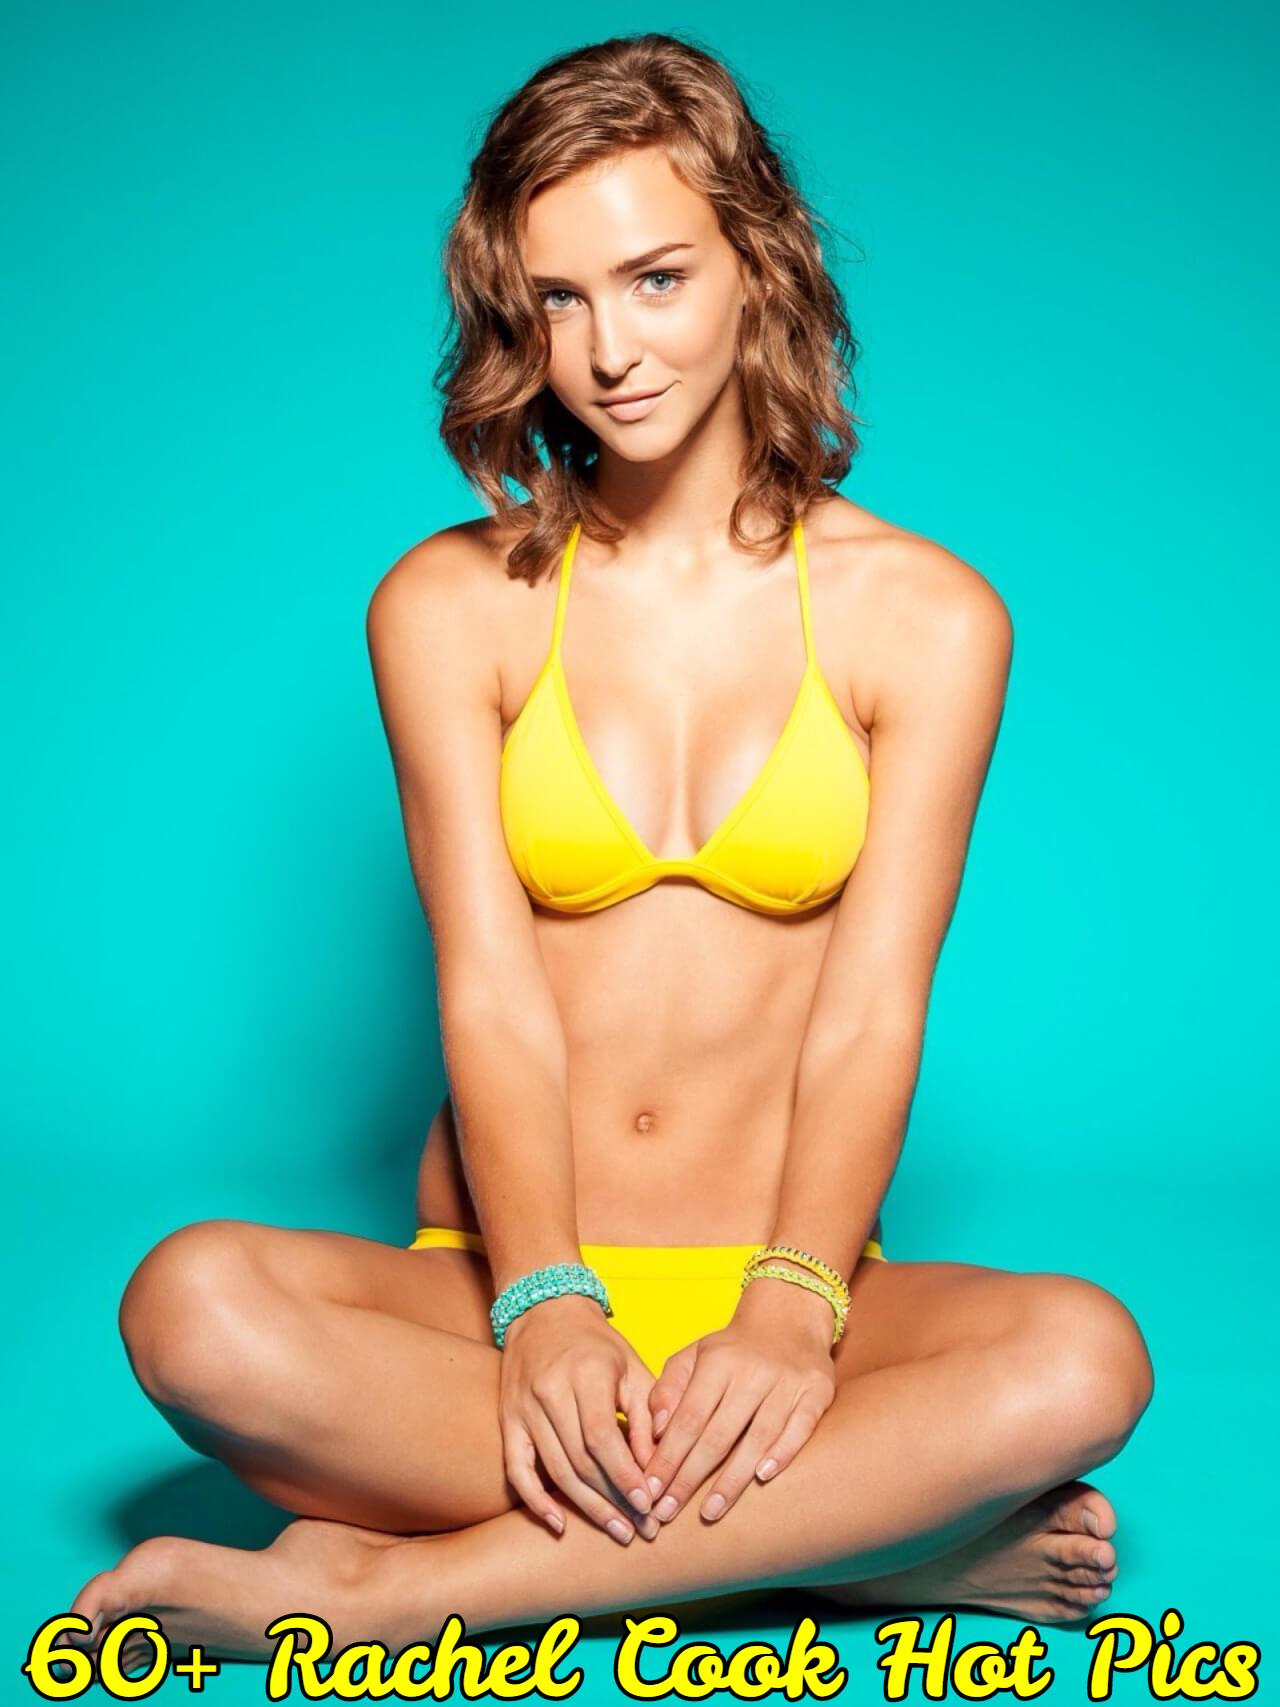 rachel cook hot pics